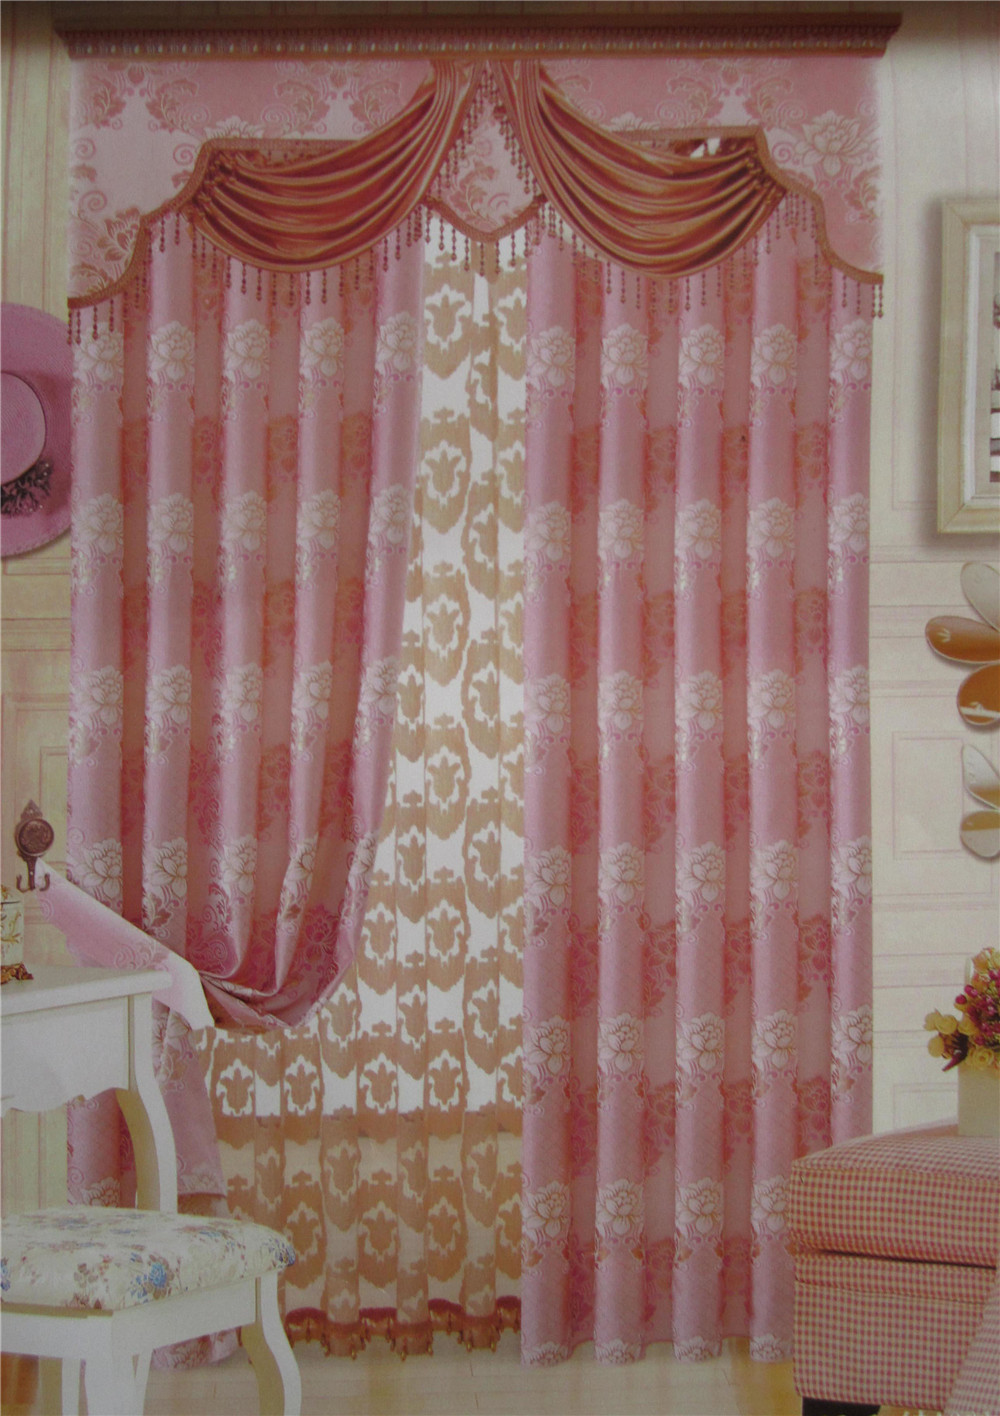 Living Room Curtains Bedroom Curtains Jacquard Curtain L007306 Custom Made Ready Made Curtains